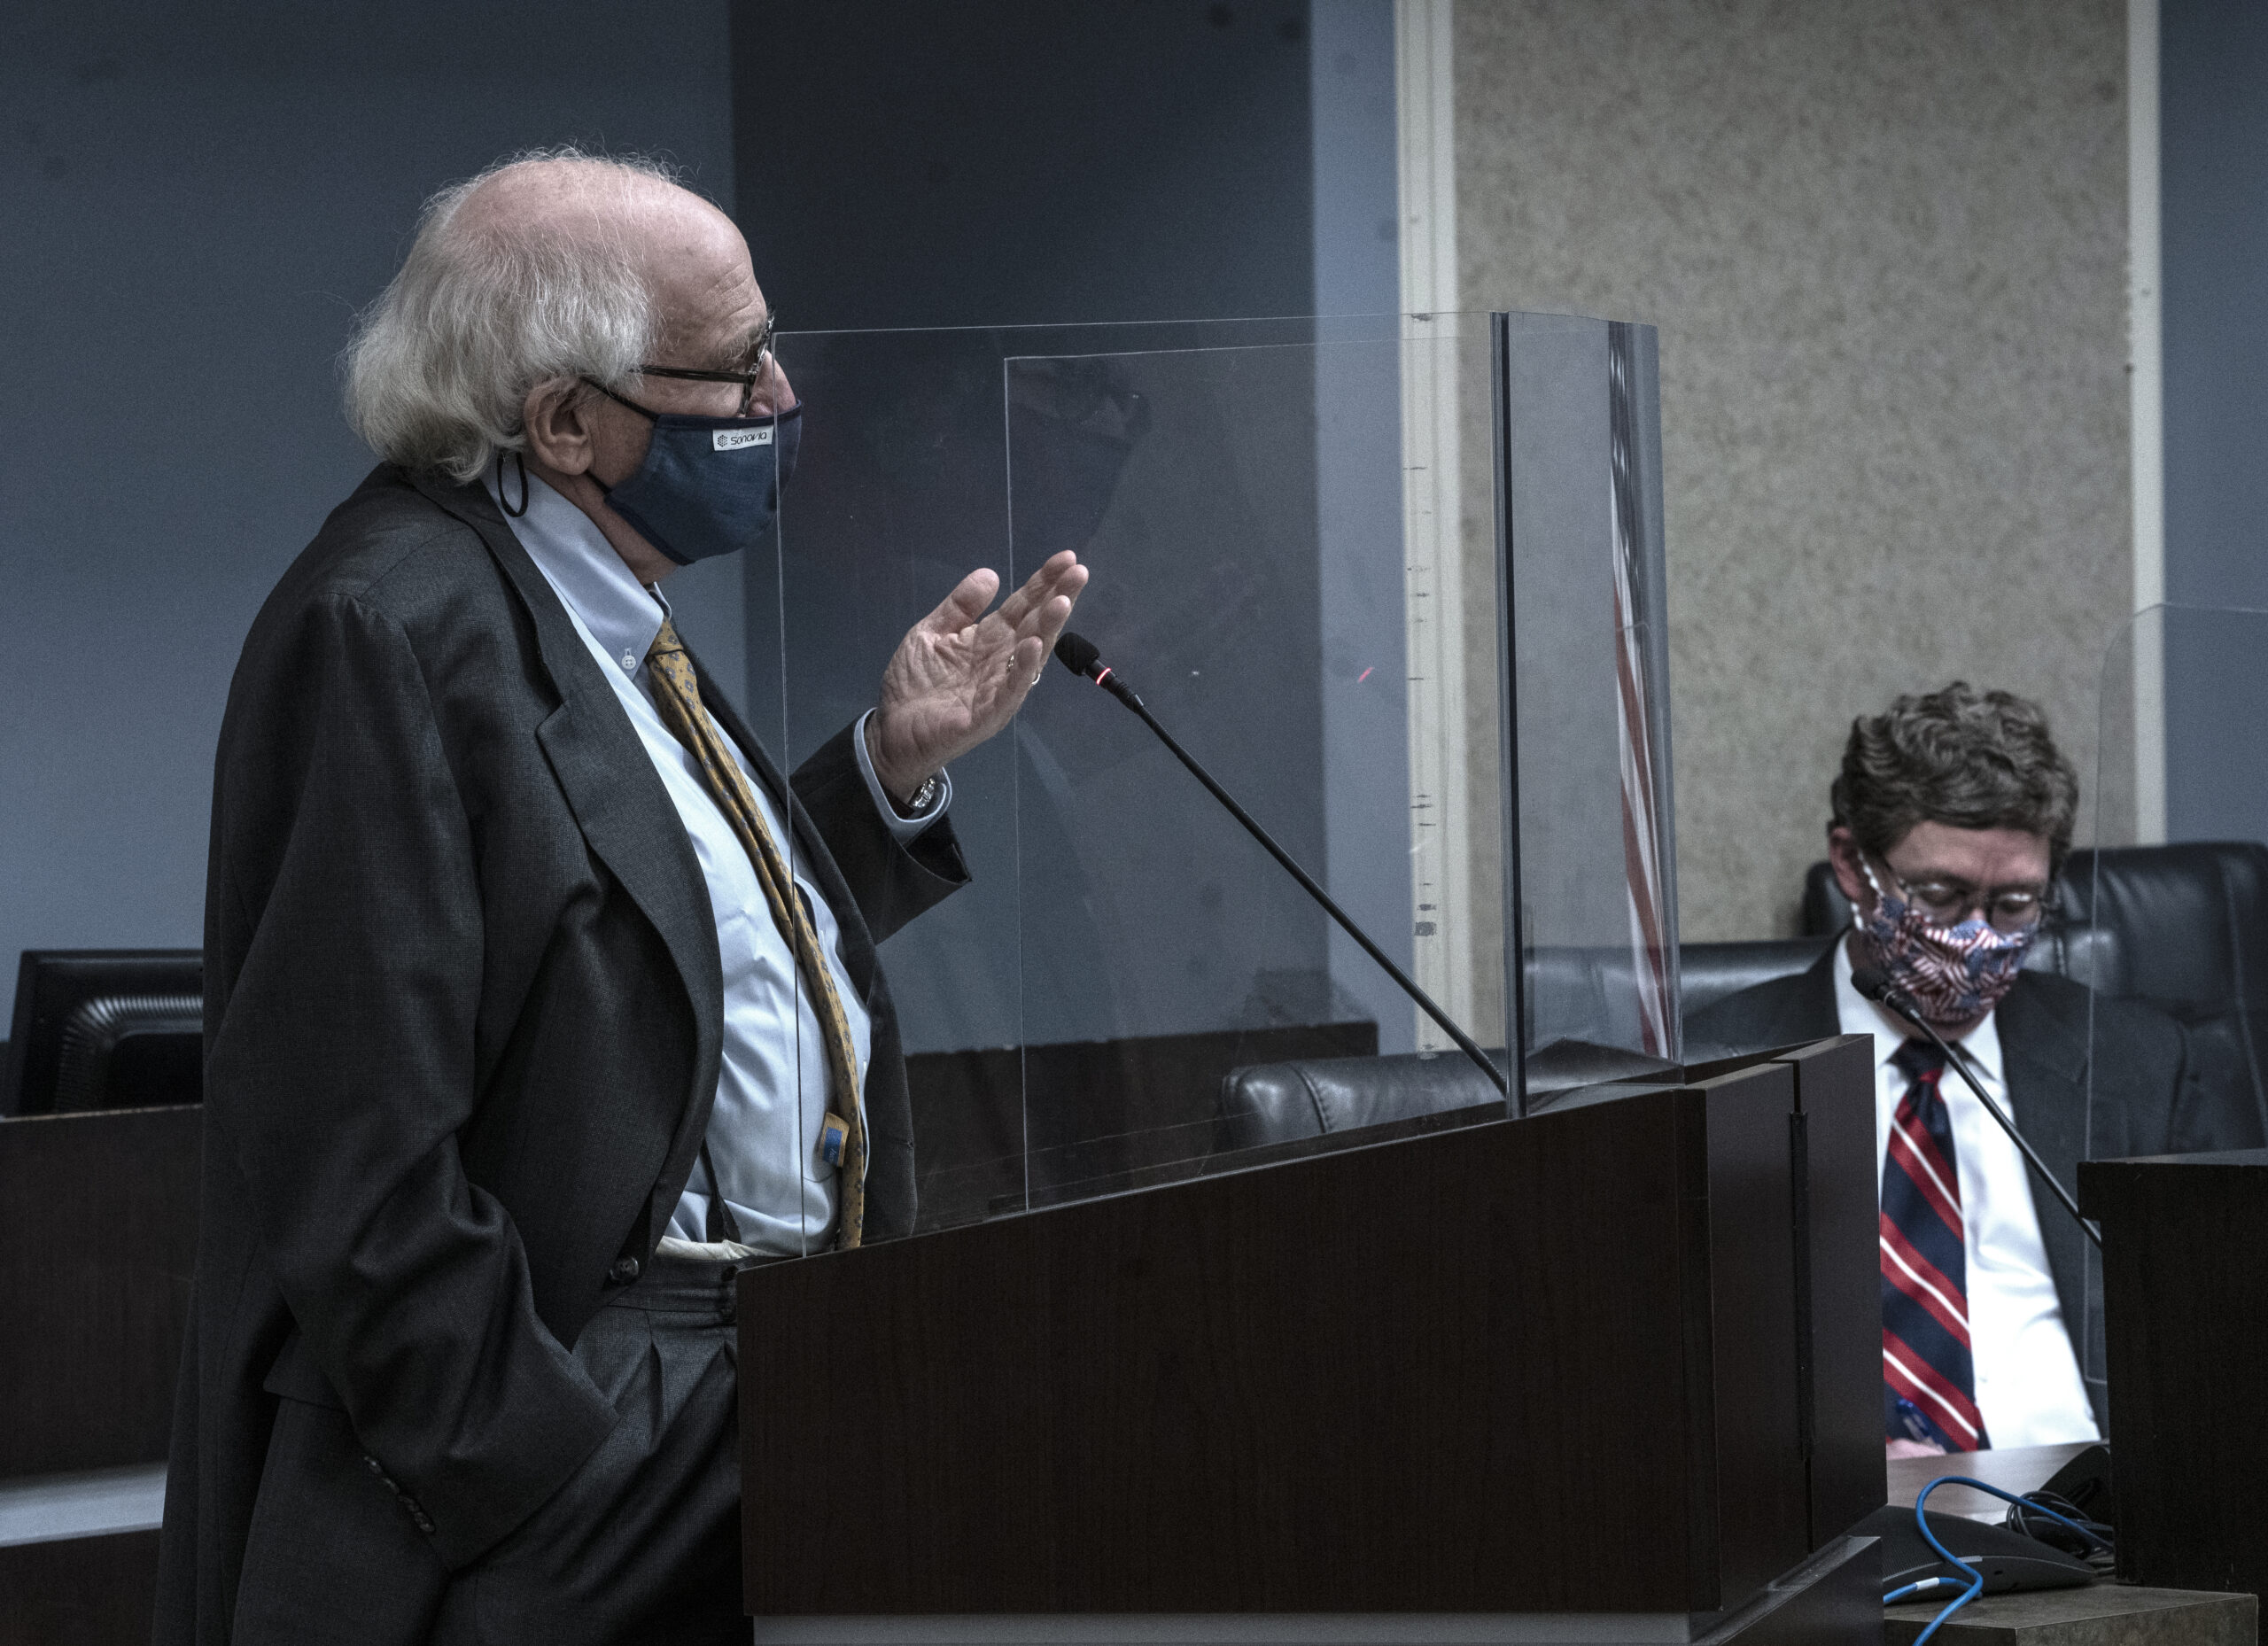 Attorney James Blumstein provides legal advice to the Davidson County Election Commission at its meeting on Monday, May 10 in Nashville. (Photo by John Partipilo.)